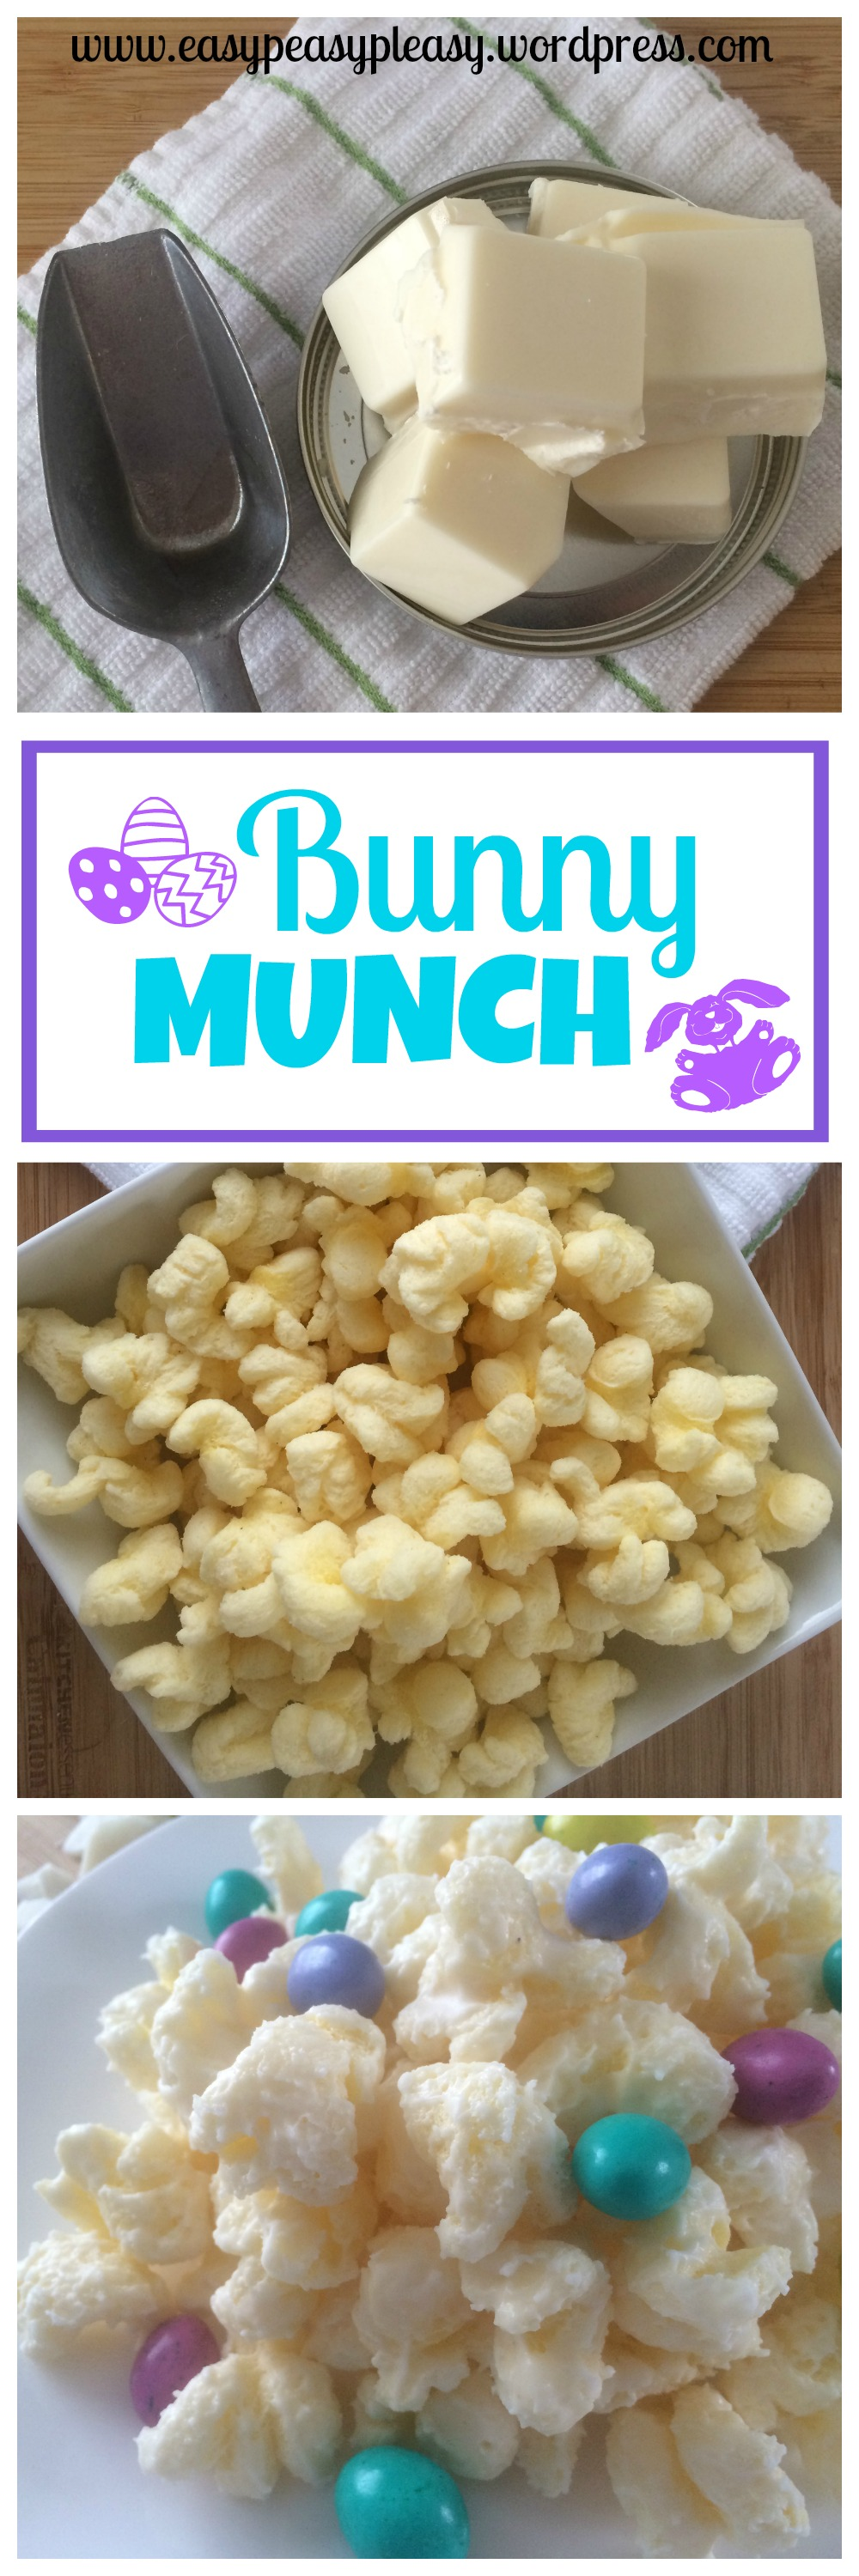 Easy 3 Ingredient Bunny Munch! Check out the recipe at www.easypeasypleasy.wordpress.com